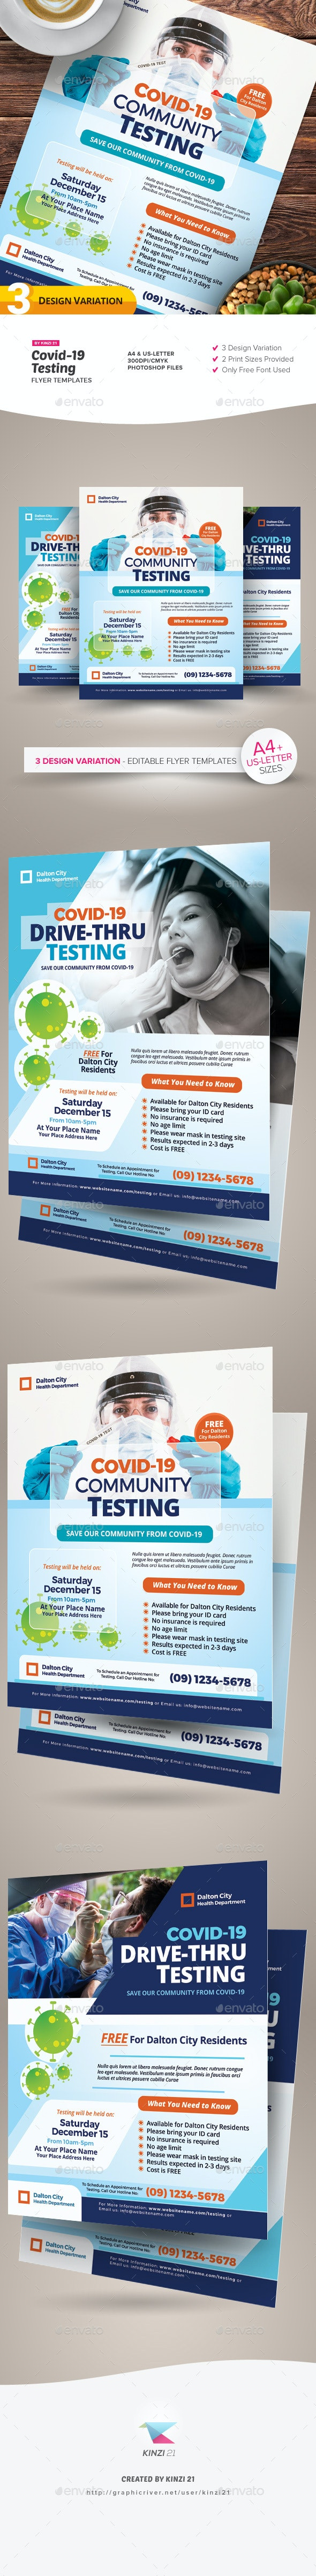 Covid-19 Testing Flyer Templates - Corporate Flyers